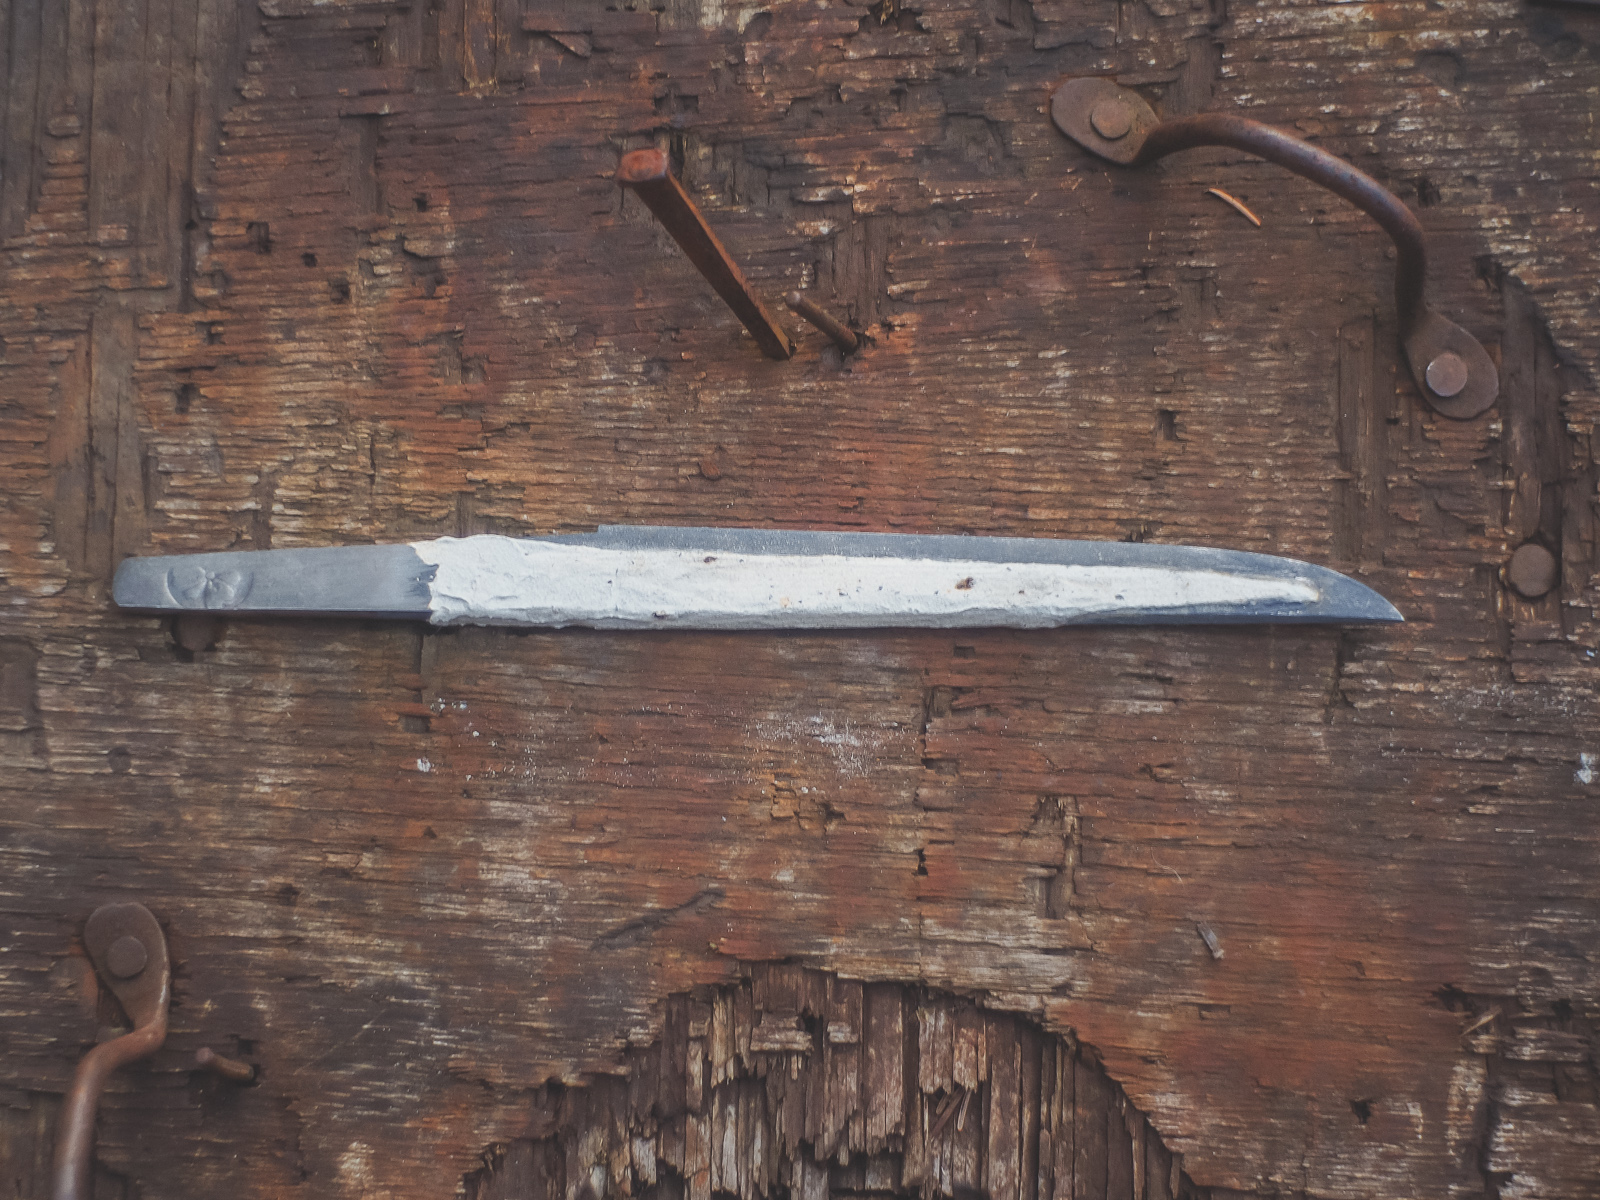 Island Blacksmith: Hand forged yoroidoshi tanto in shirasaya, made from reclaimed and natural materials using traditional techniques